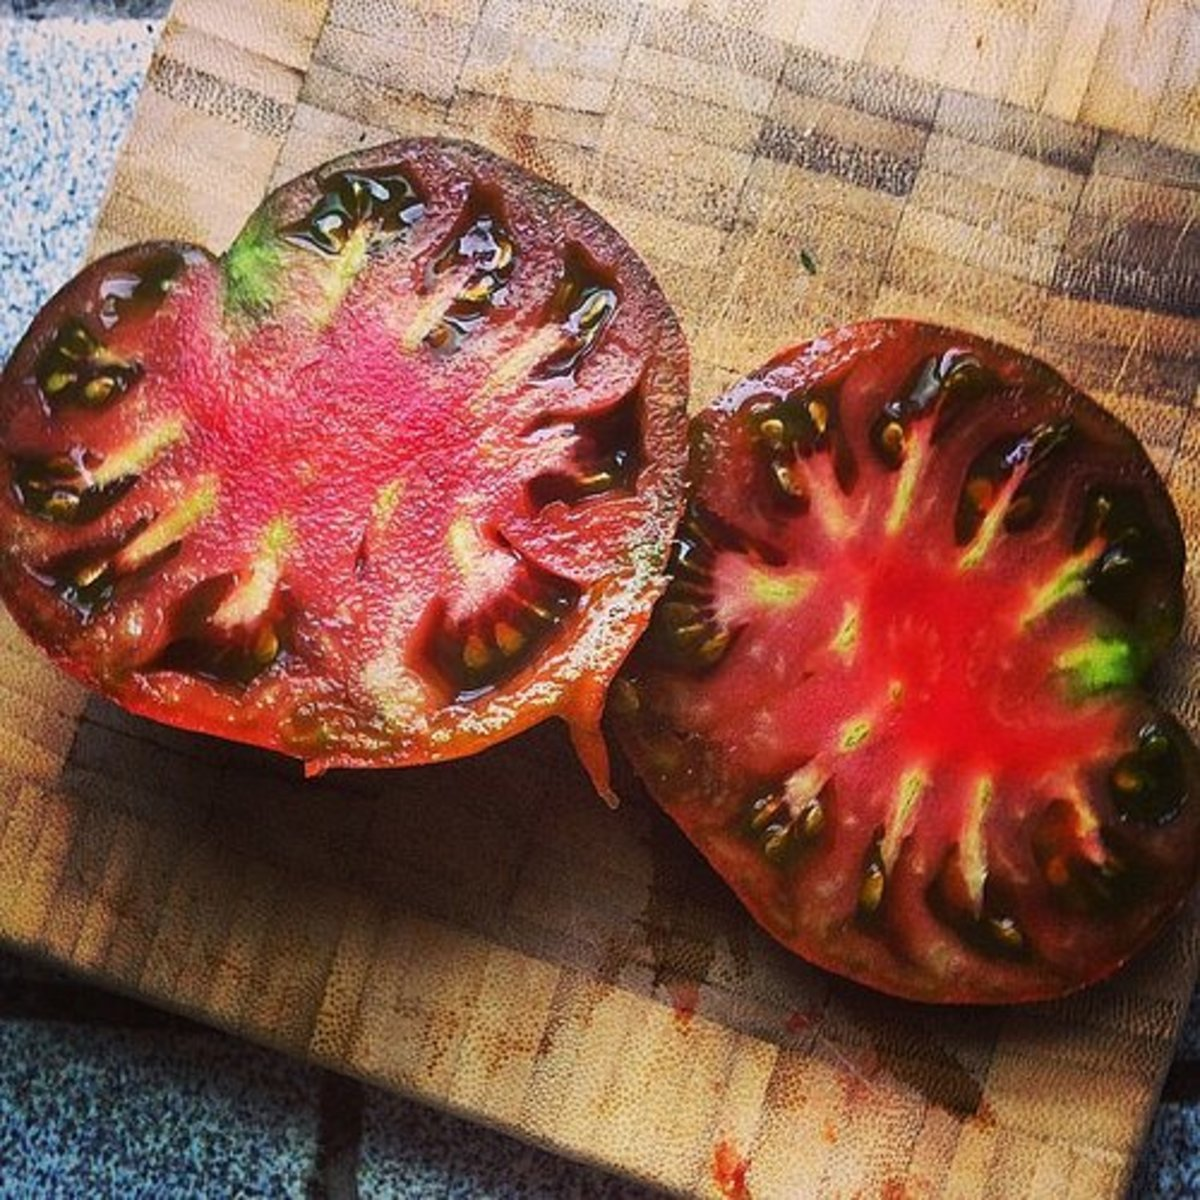 Black Krim tomato sliced